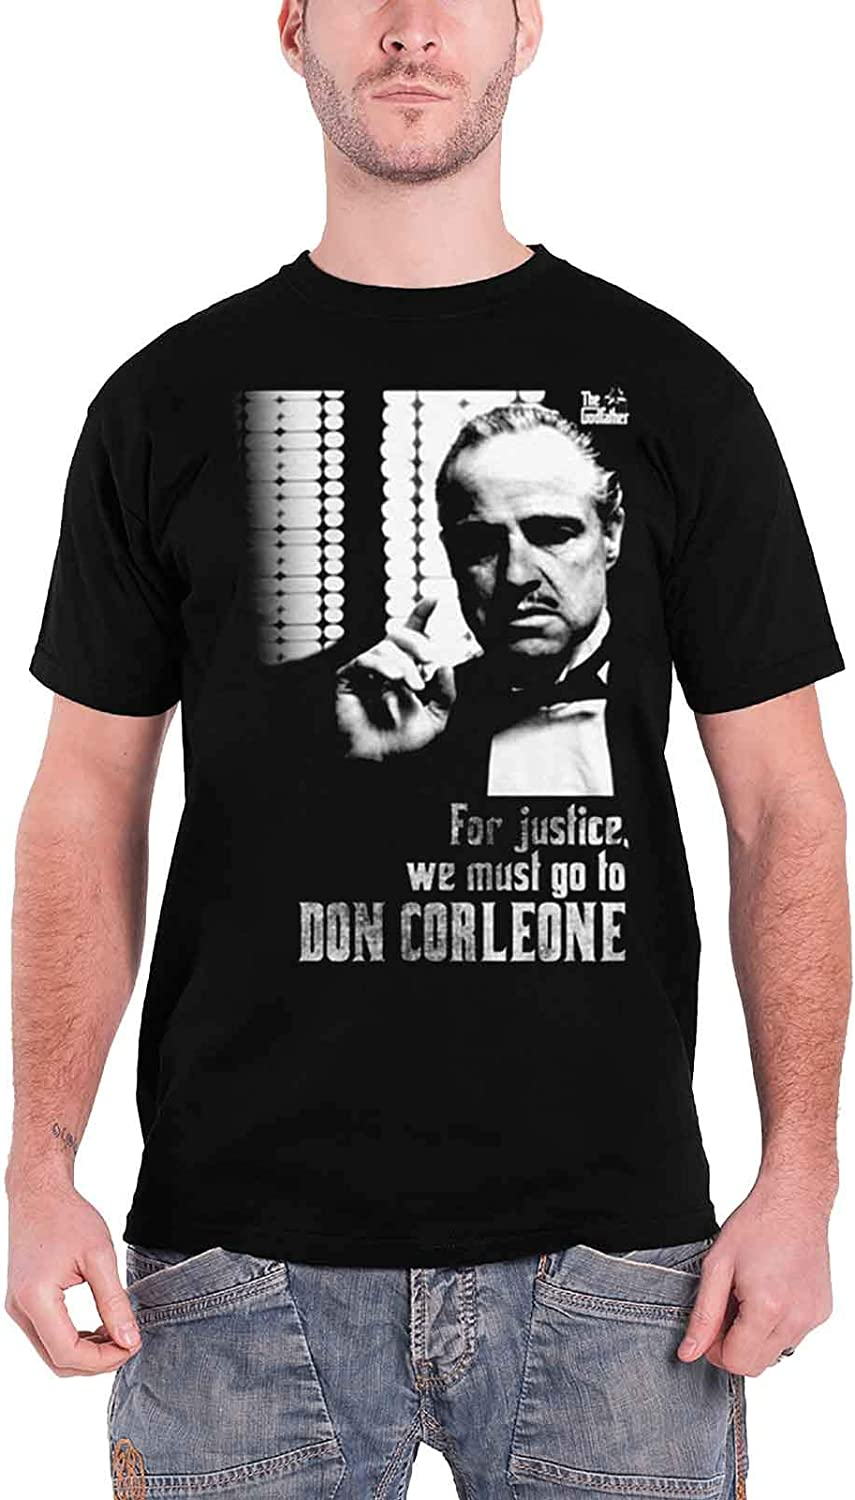 Officially Licensed Merchandise Godfather For Justice T Shirt Black Bekleidung